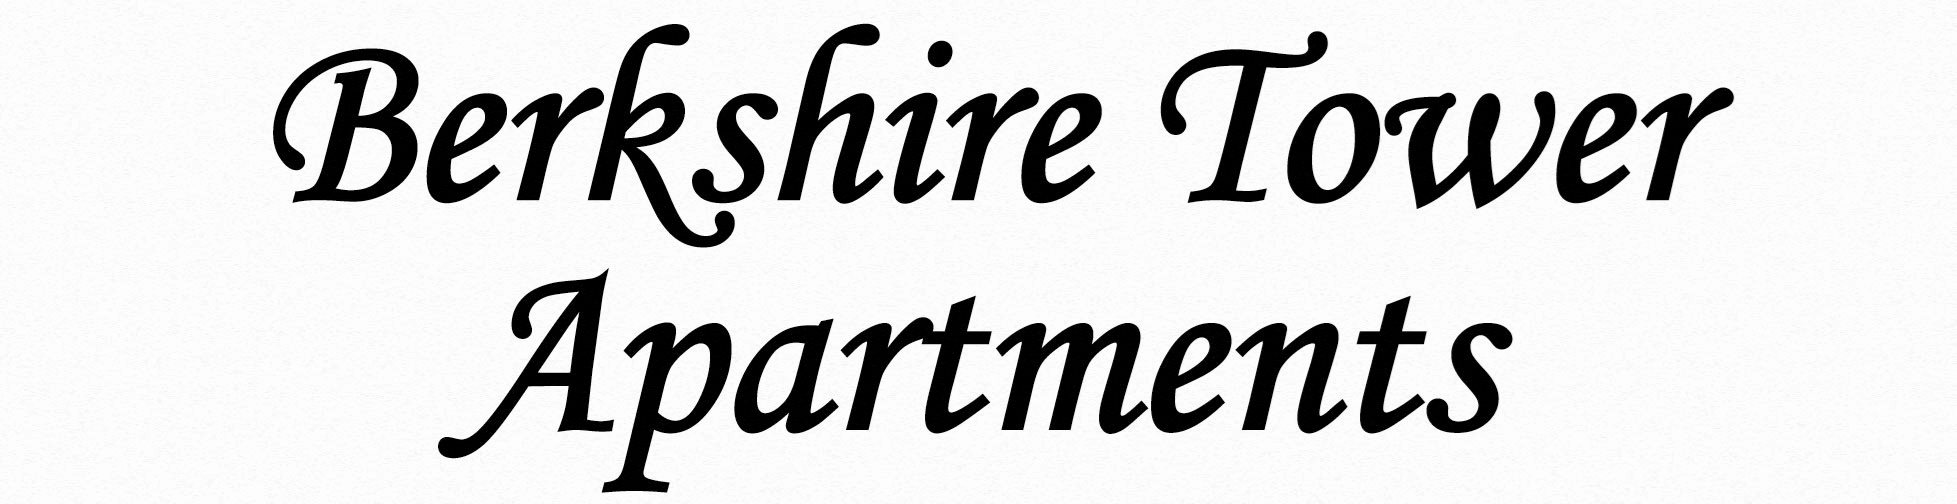 Apartments In Downtown Reading, PA | Berkshire Tower ... on map of windsor pa, map of chester pa, map of oxford pa, map of exeter pa, map of bedford pa, map of south east pa, map of tioga pa, map of northampton pa, map of kensington pa, map of warrington pa, map of derry pa, map of wallingford pa, map of armagh pa, map of reading pa, map of south west pa, map of bristol pa, map of warminster pa, map of liverpool pa, map of throop pa,